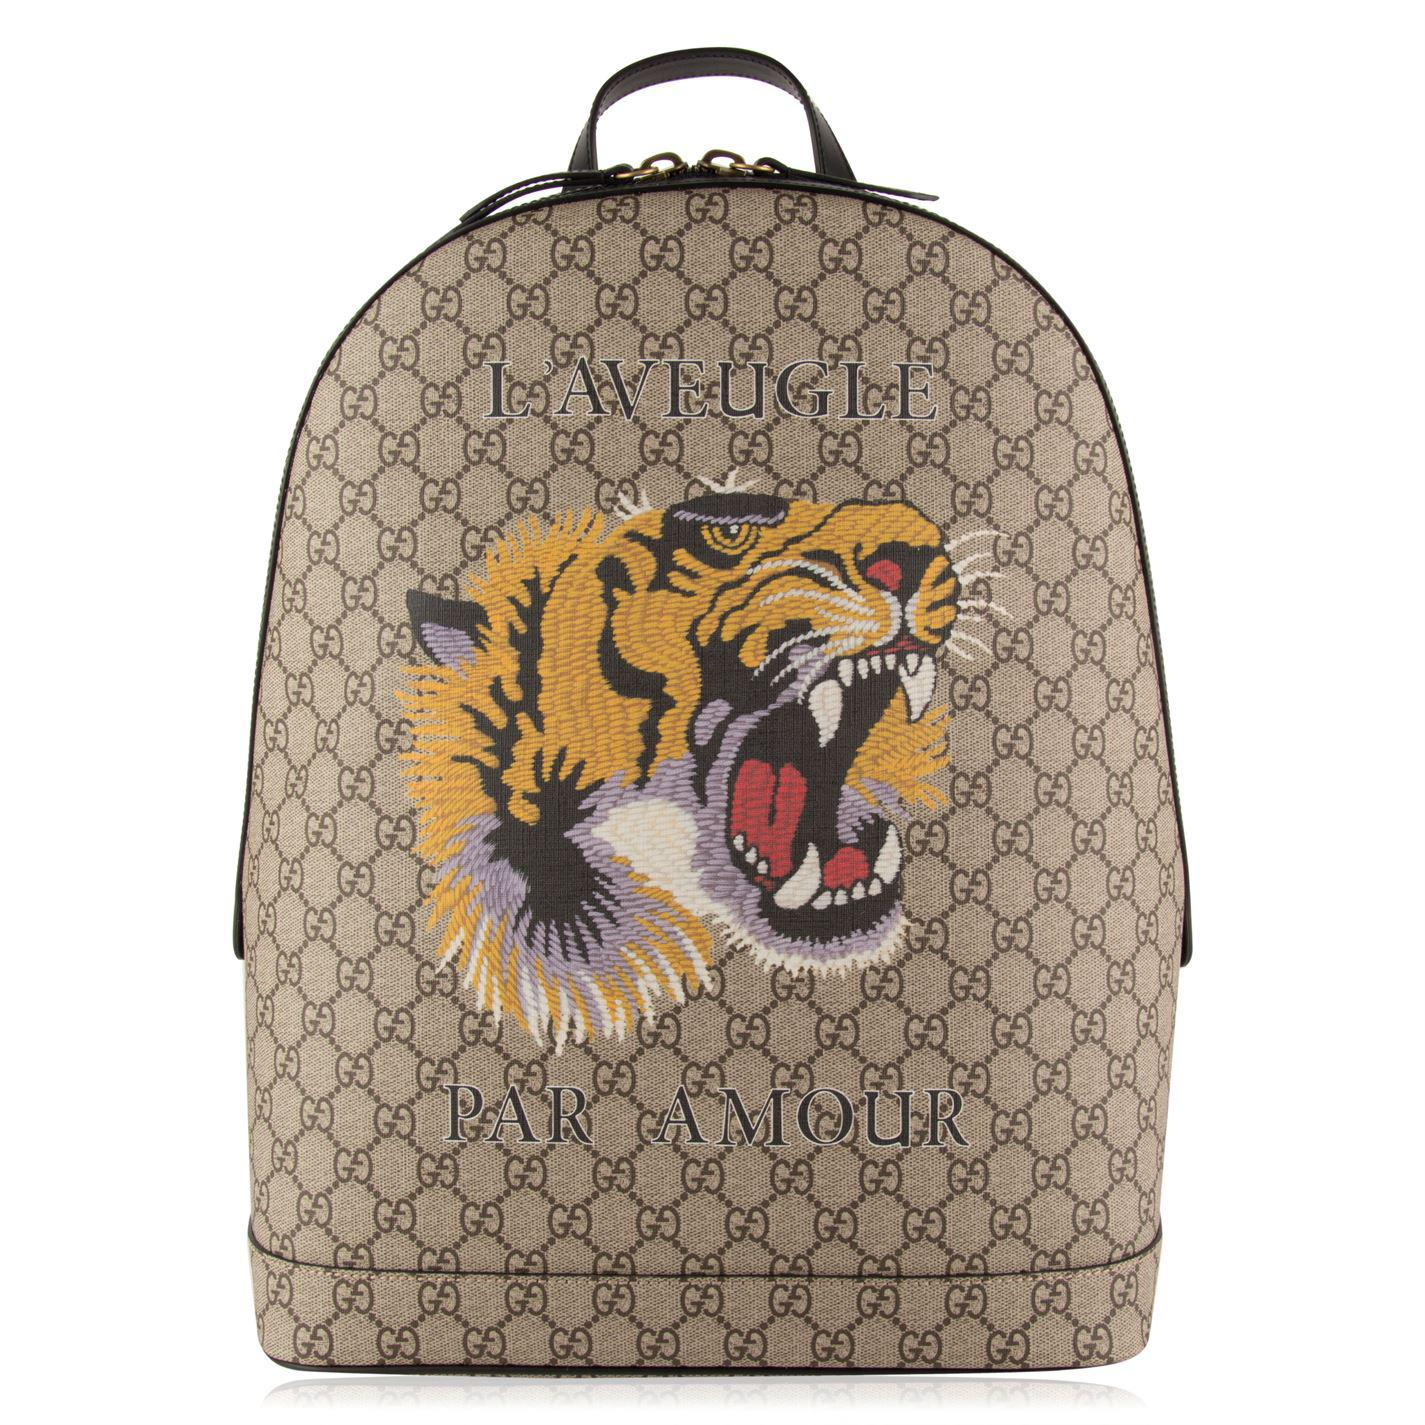 Lyst - Gucci Tiger Gg Supreme Backpack in Natural 49f1e27053894